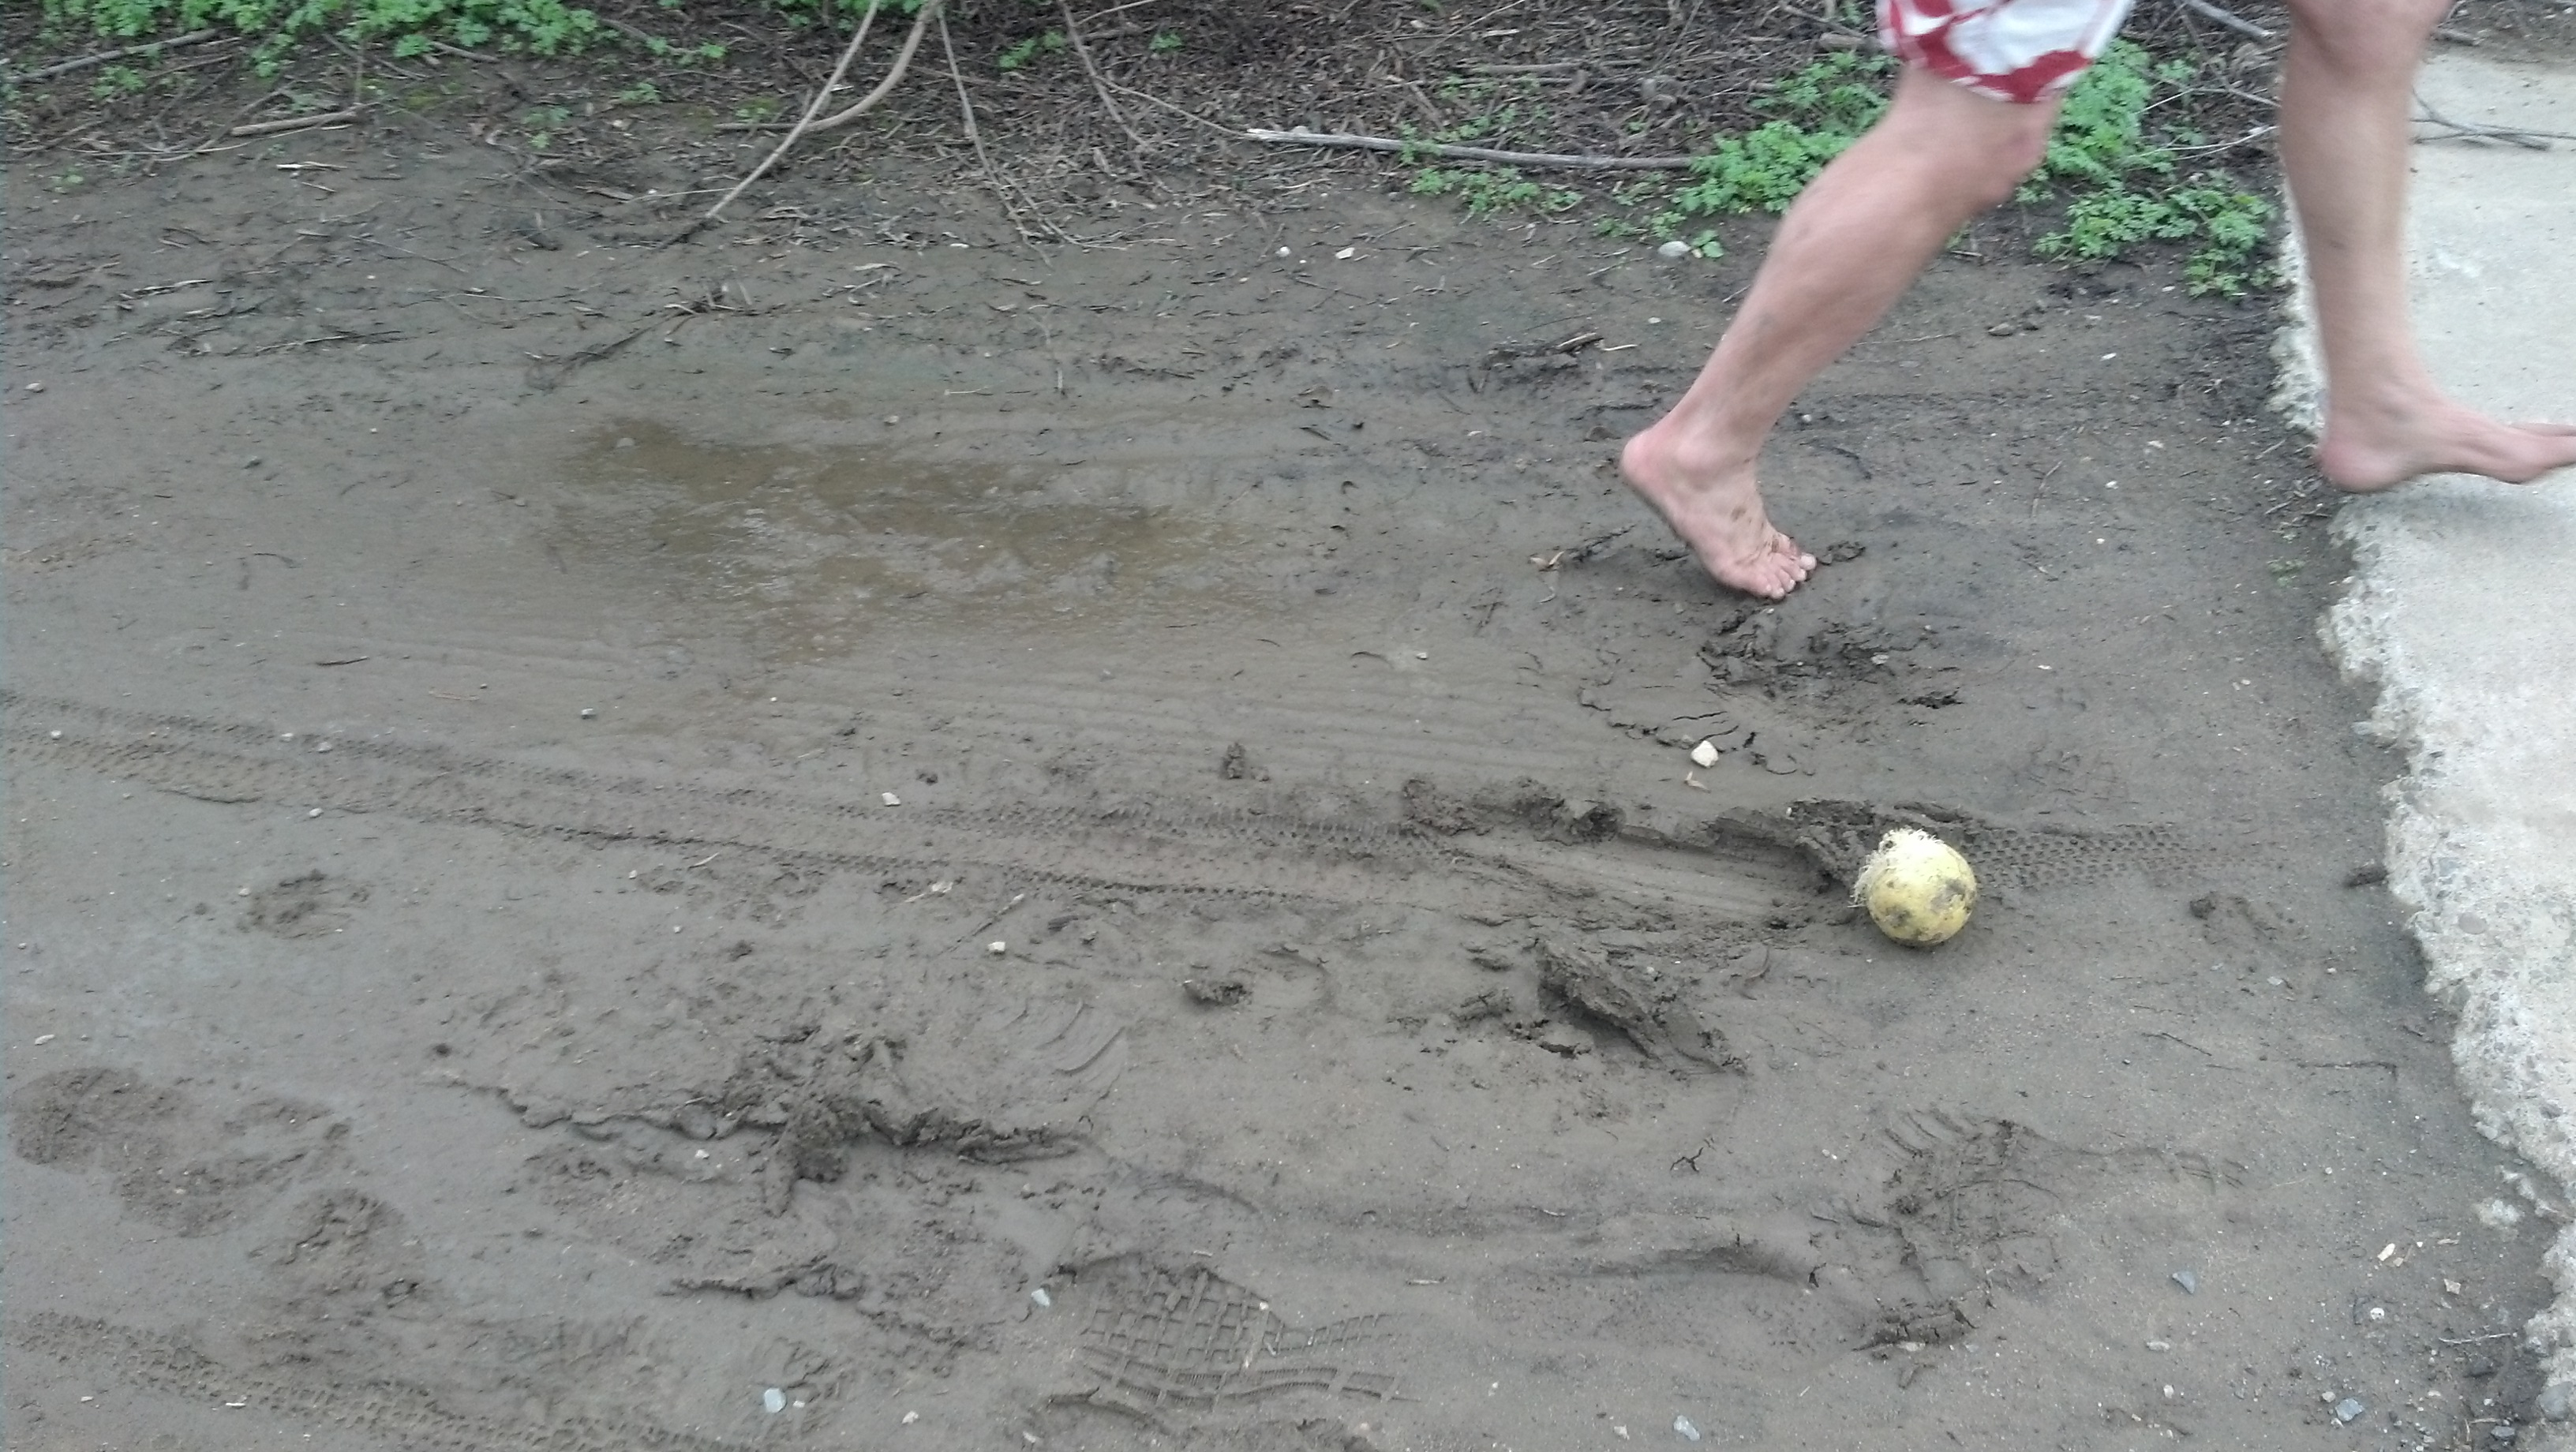 Ken Bob's foot in the mud (and a gourd)